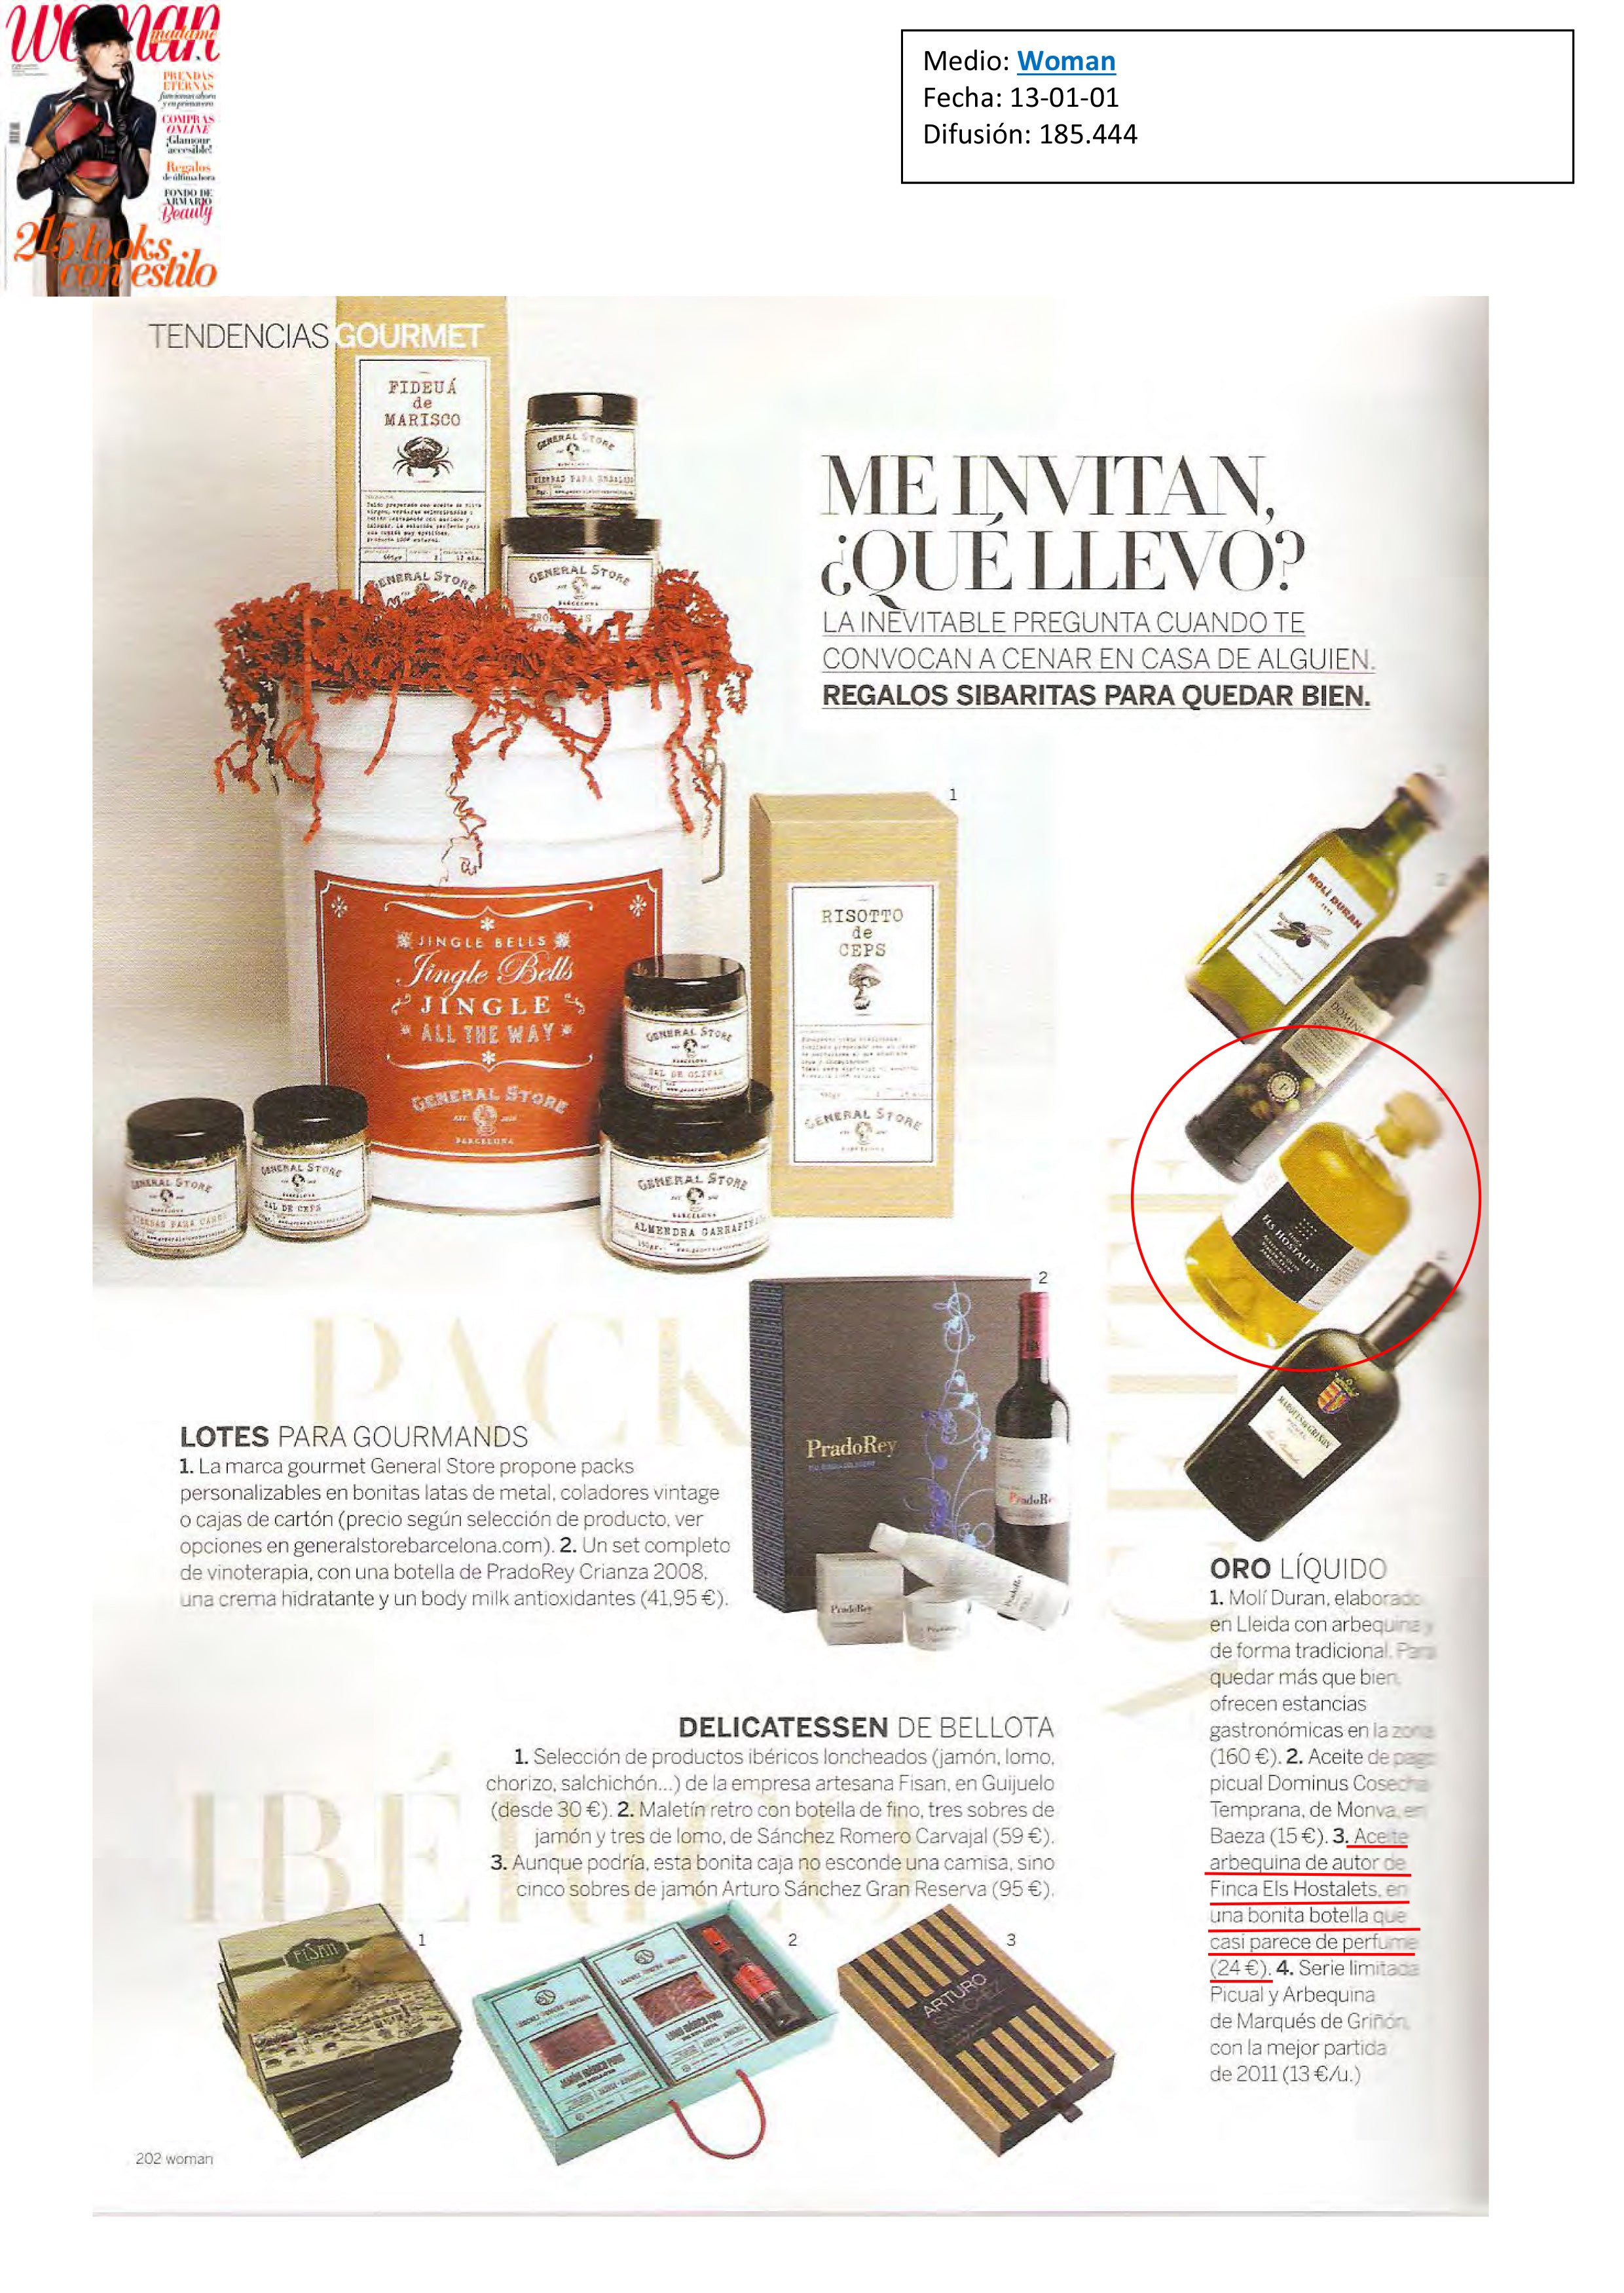 Aceite Finca Hostalets en Revista Woman